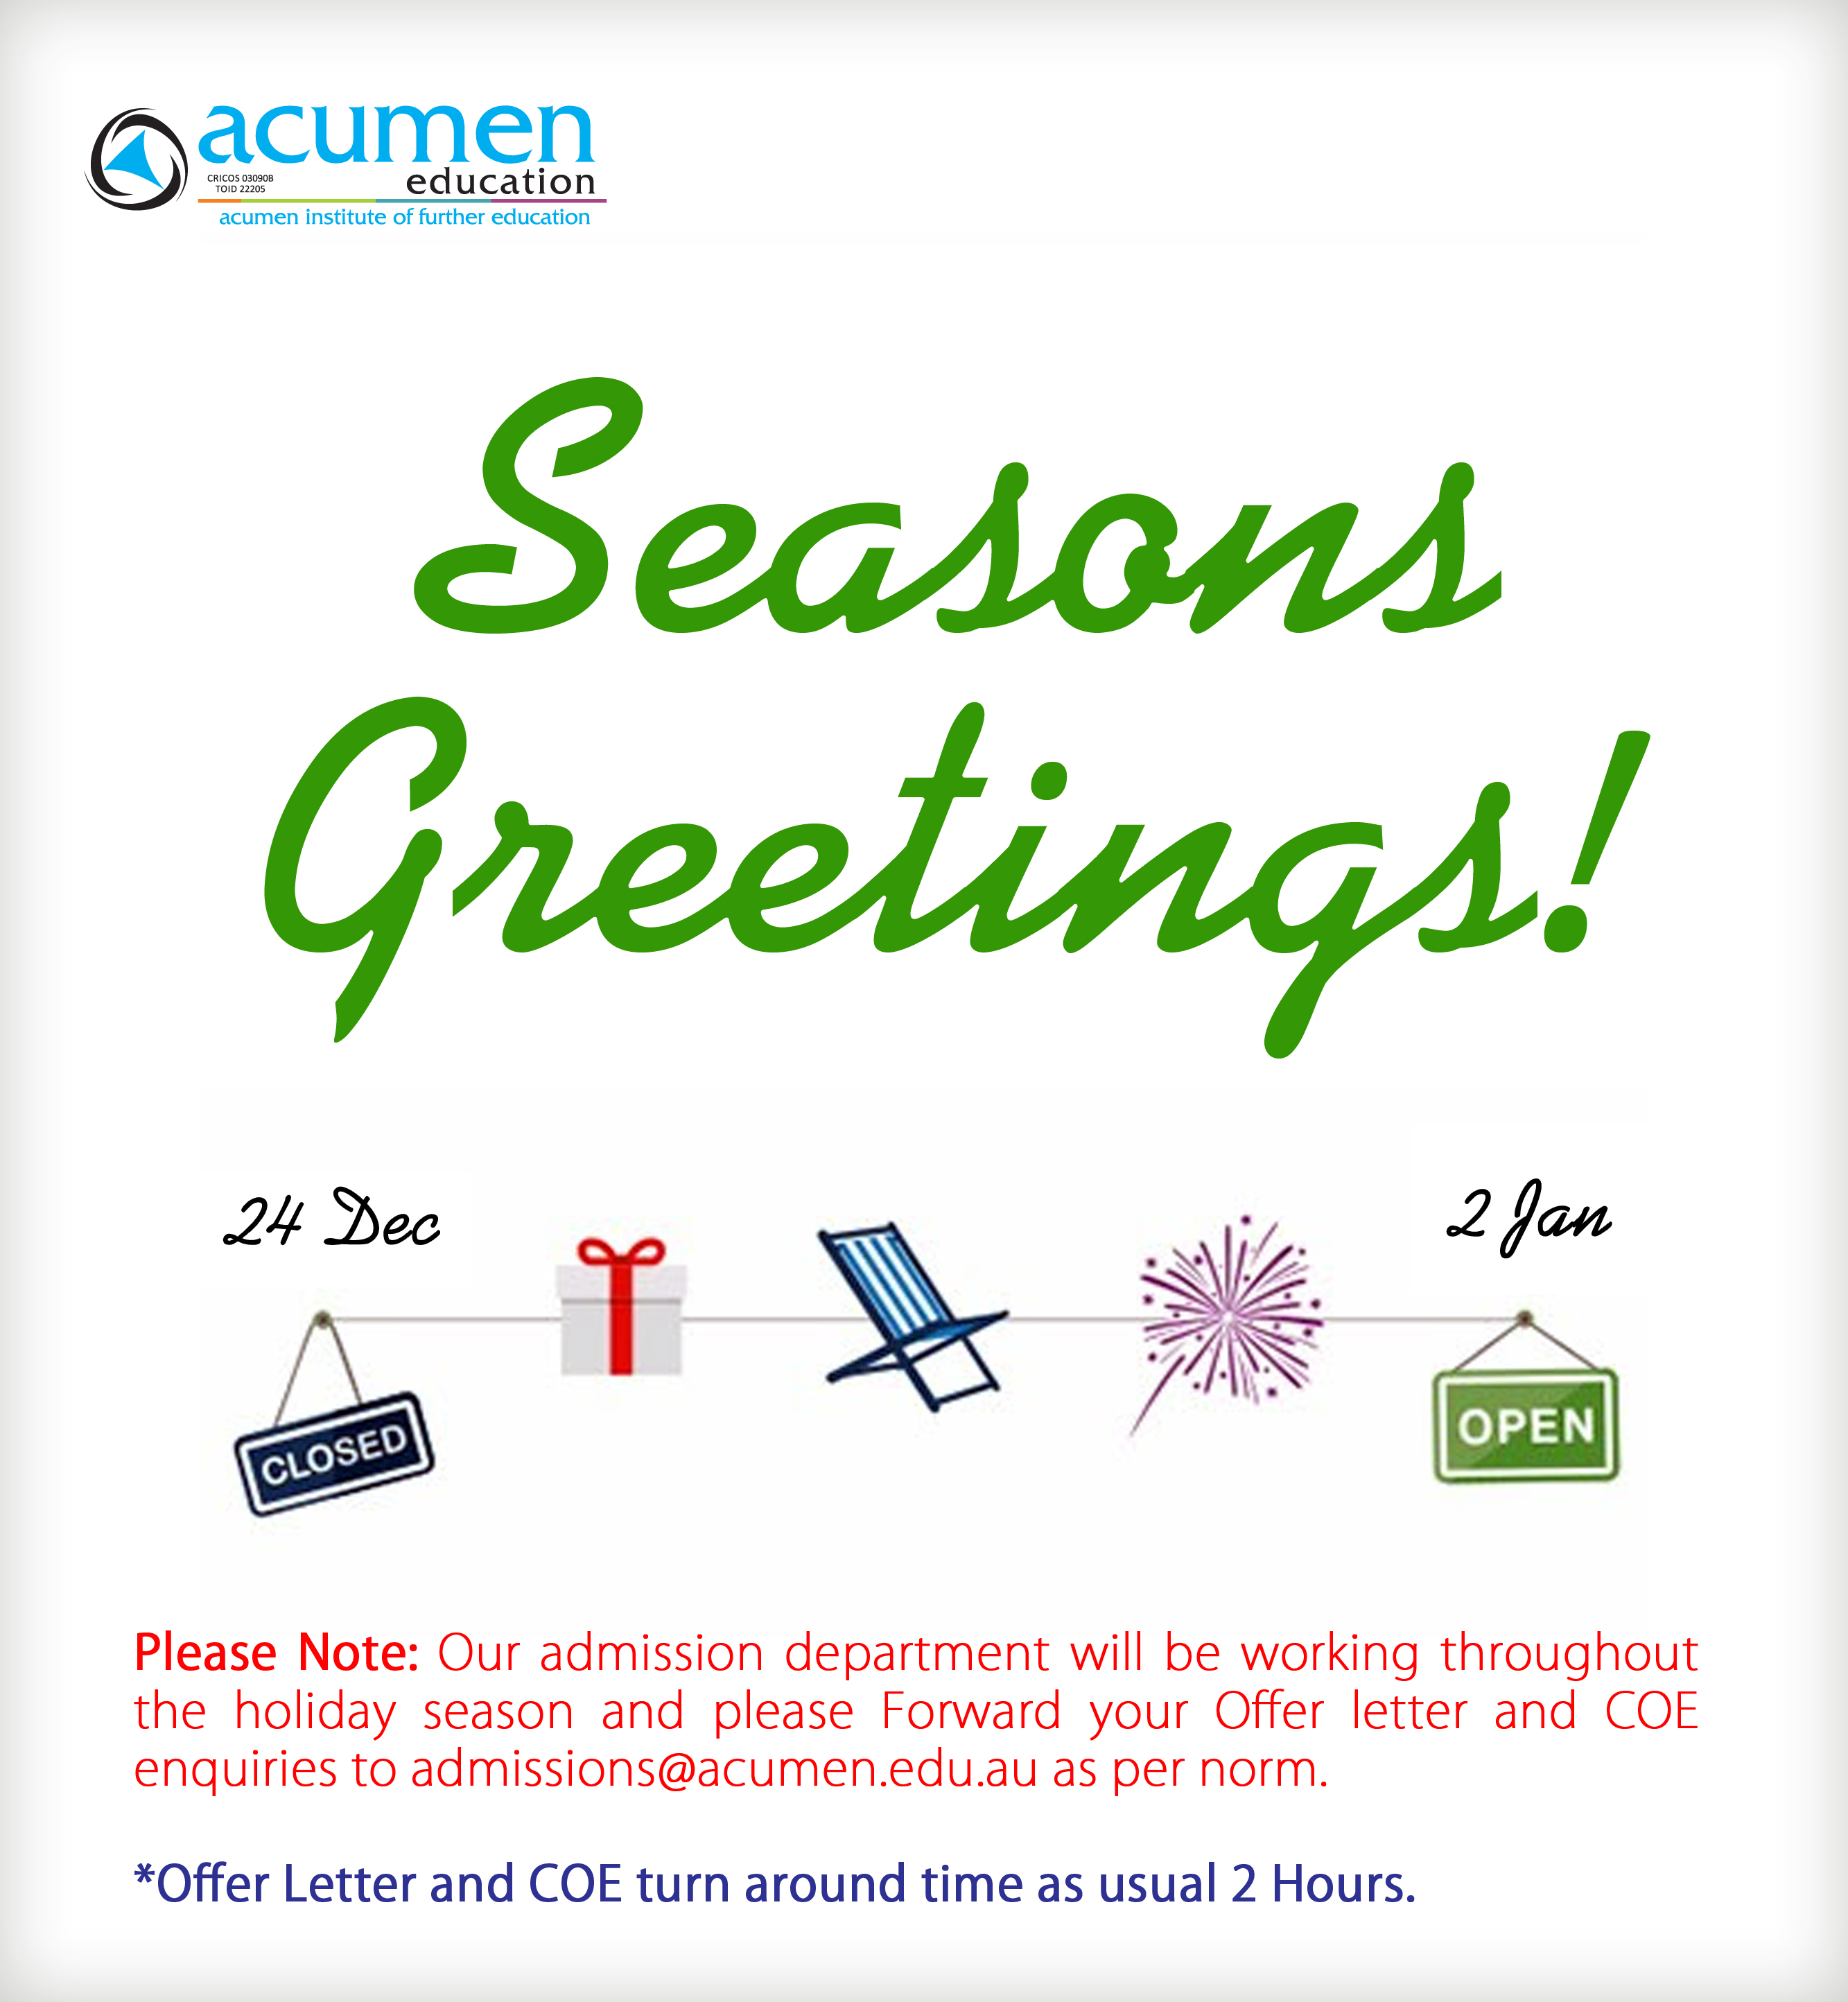 Seasons greetings 2017 acumen institute of further education share this story choose your platform kristyandbryce Gallery